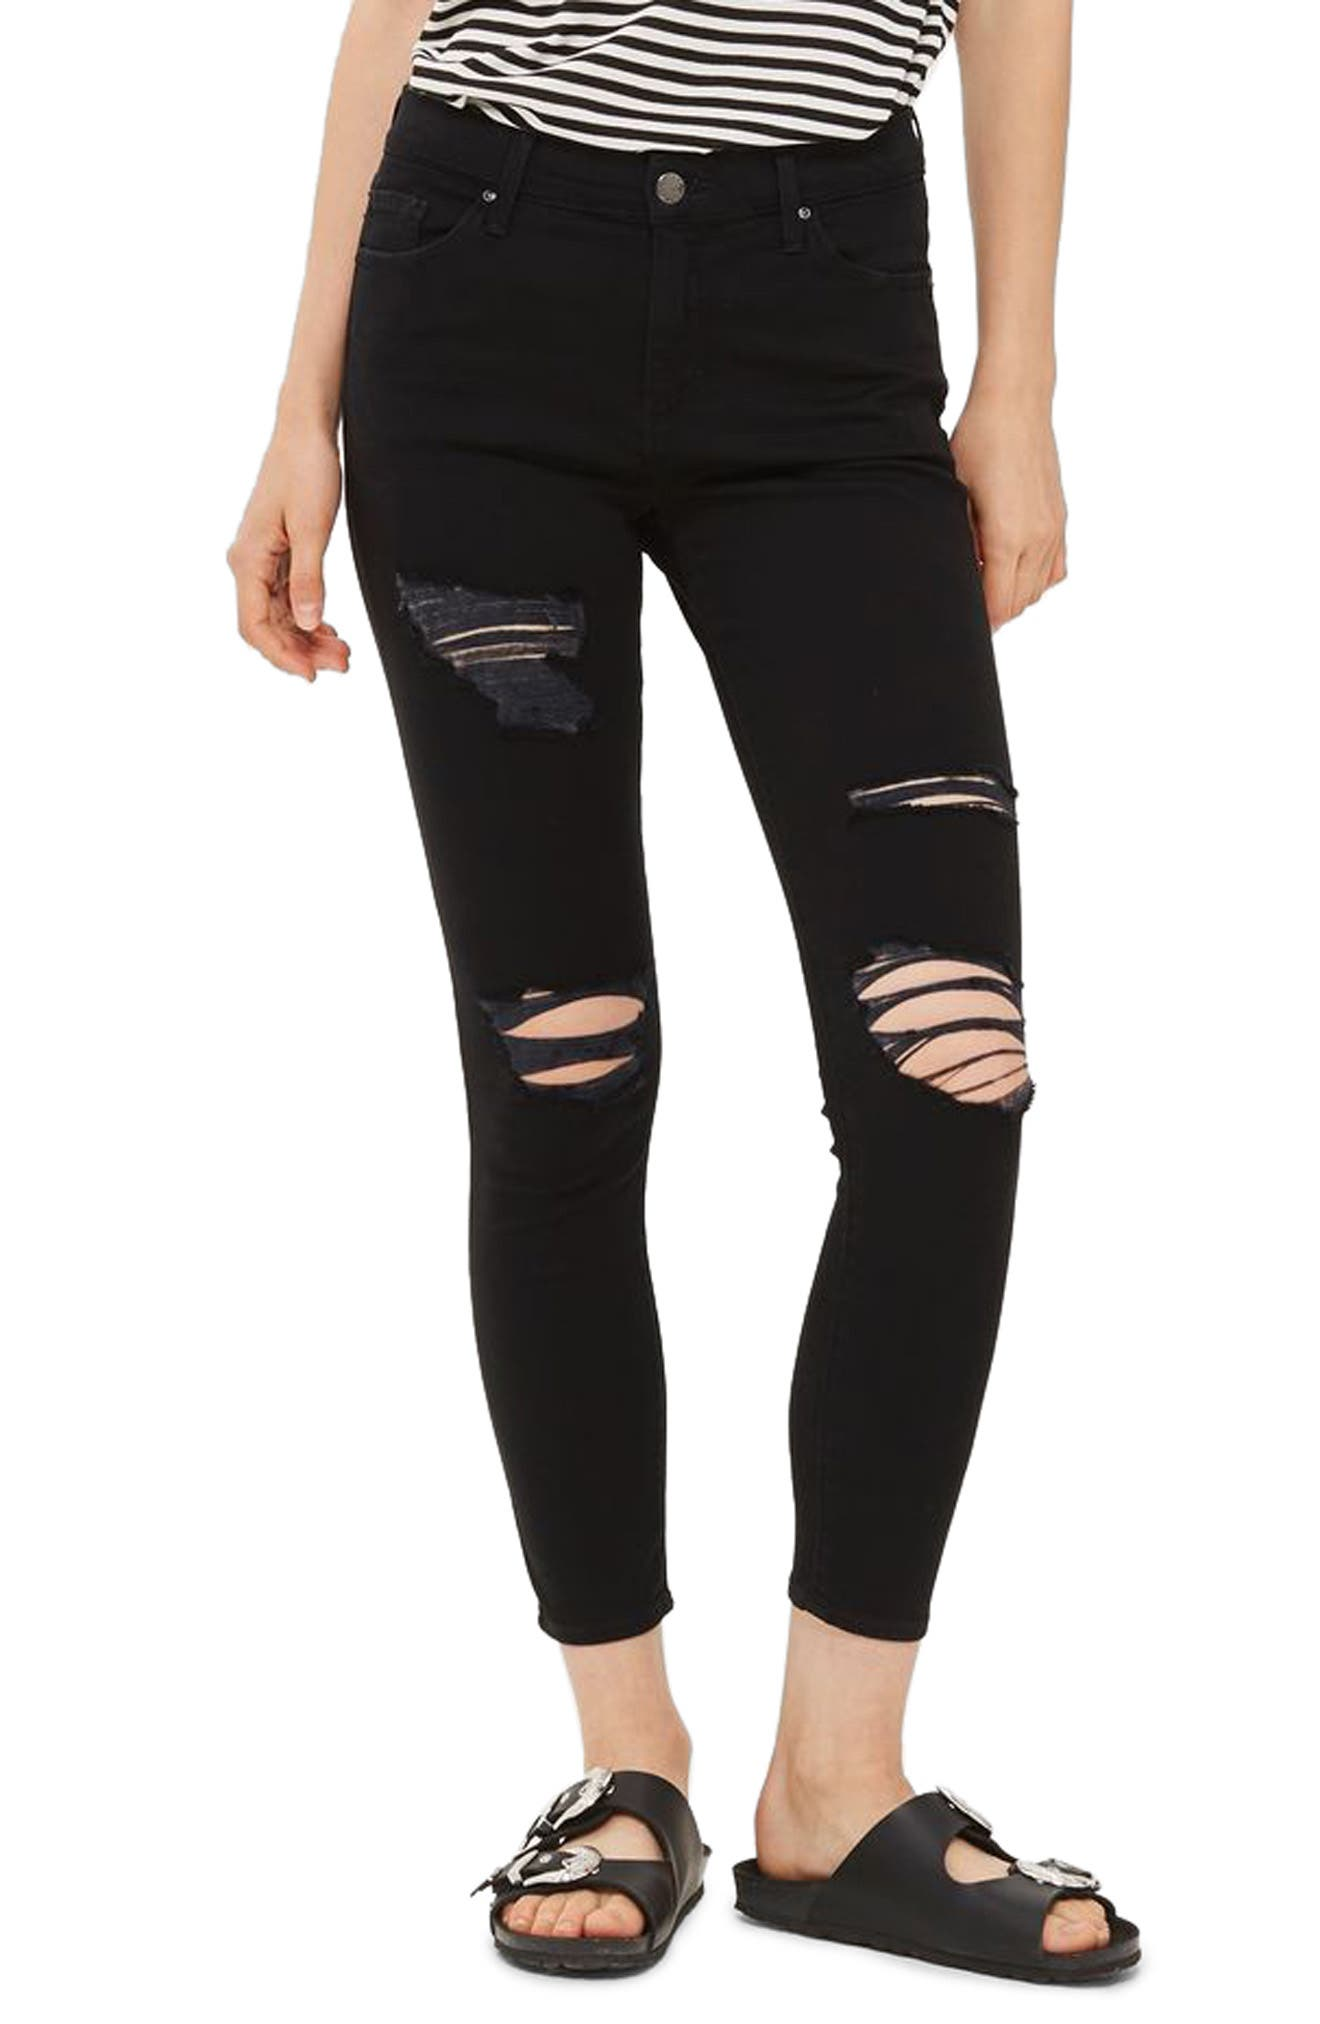 Topshop Leigh Super Ripped High Waist Skinny Jeans (Petite)